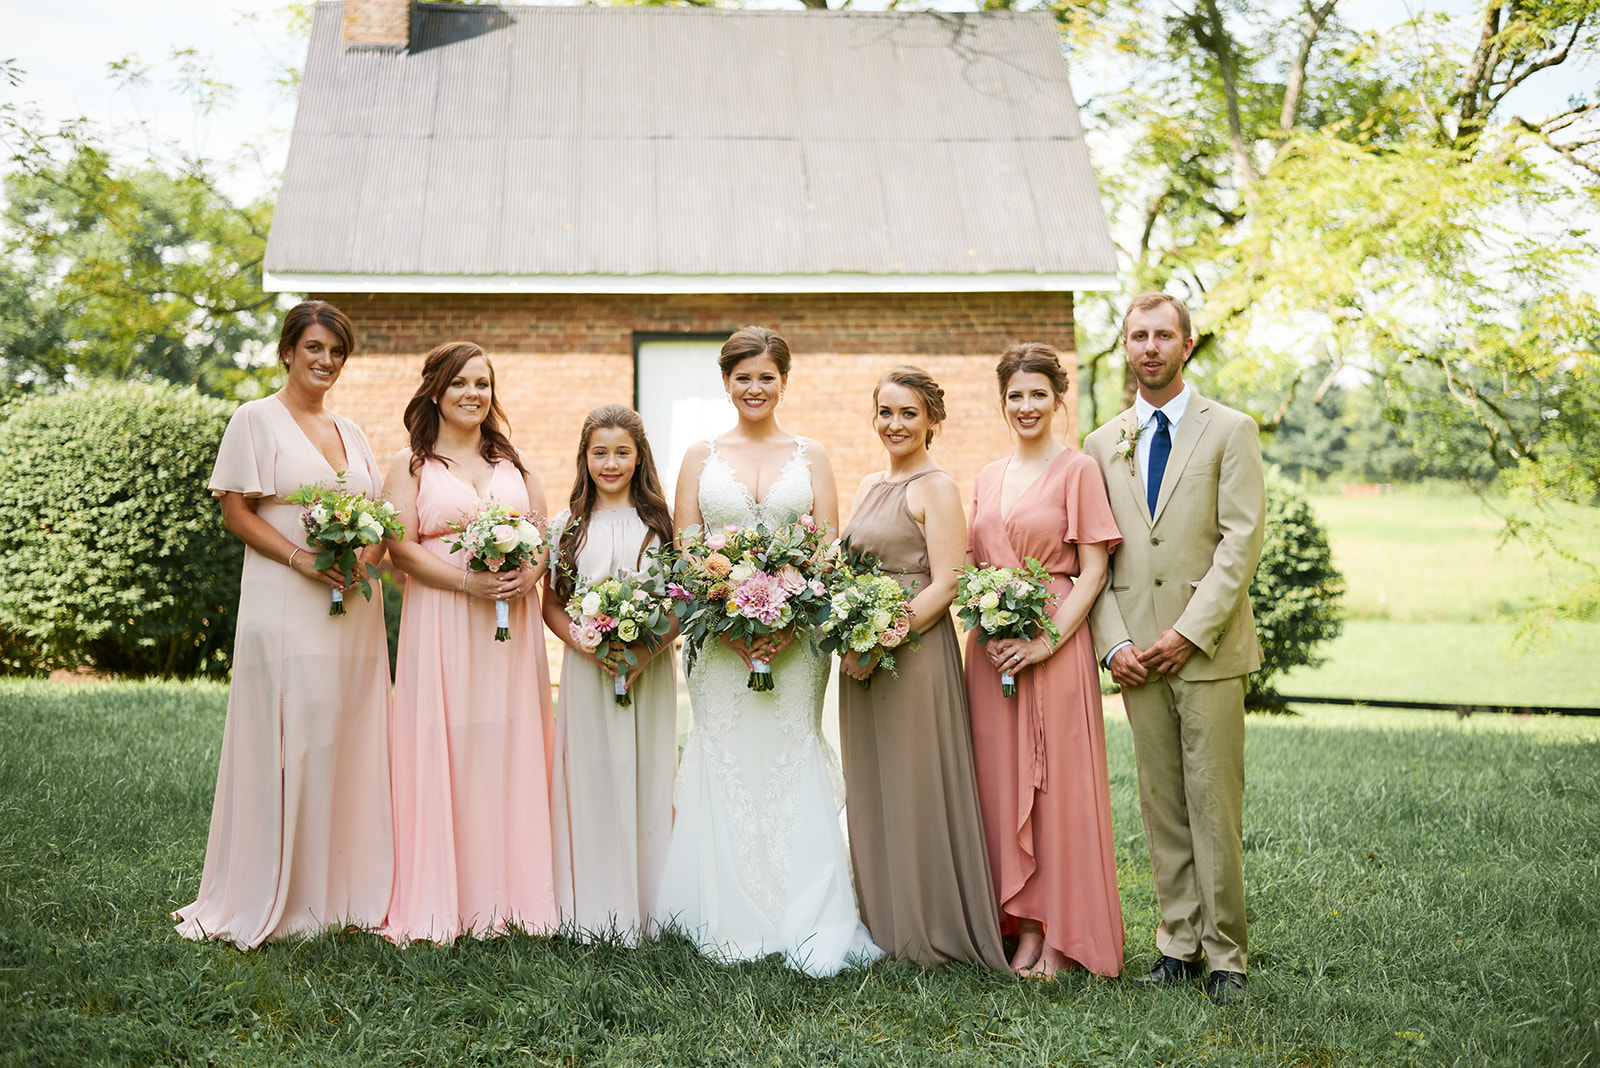 Southern glam bridal party is mismatched dresses